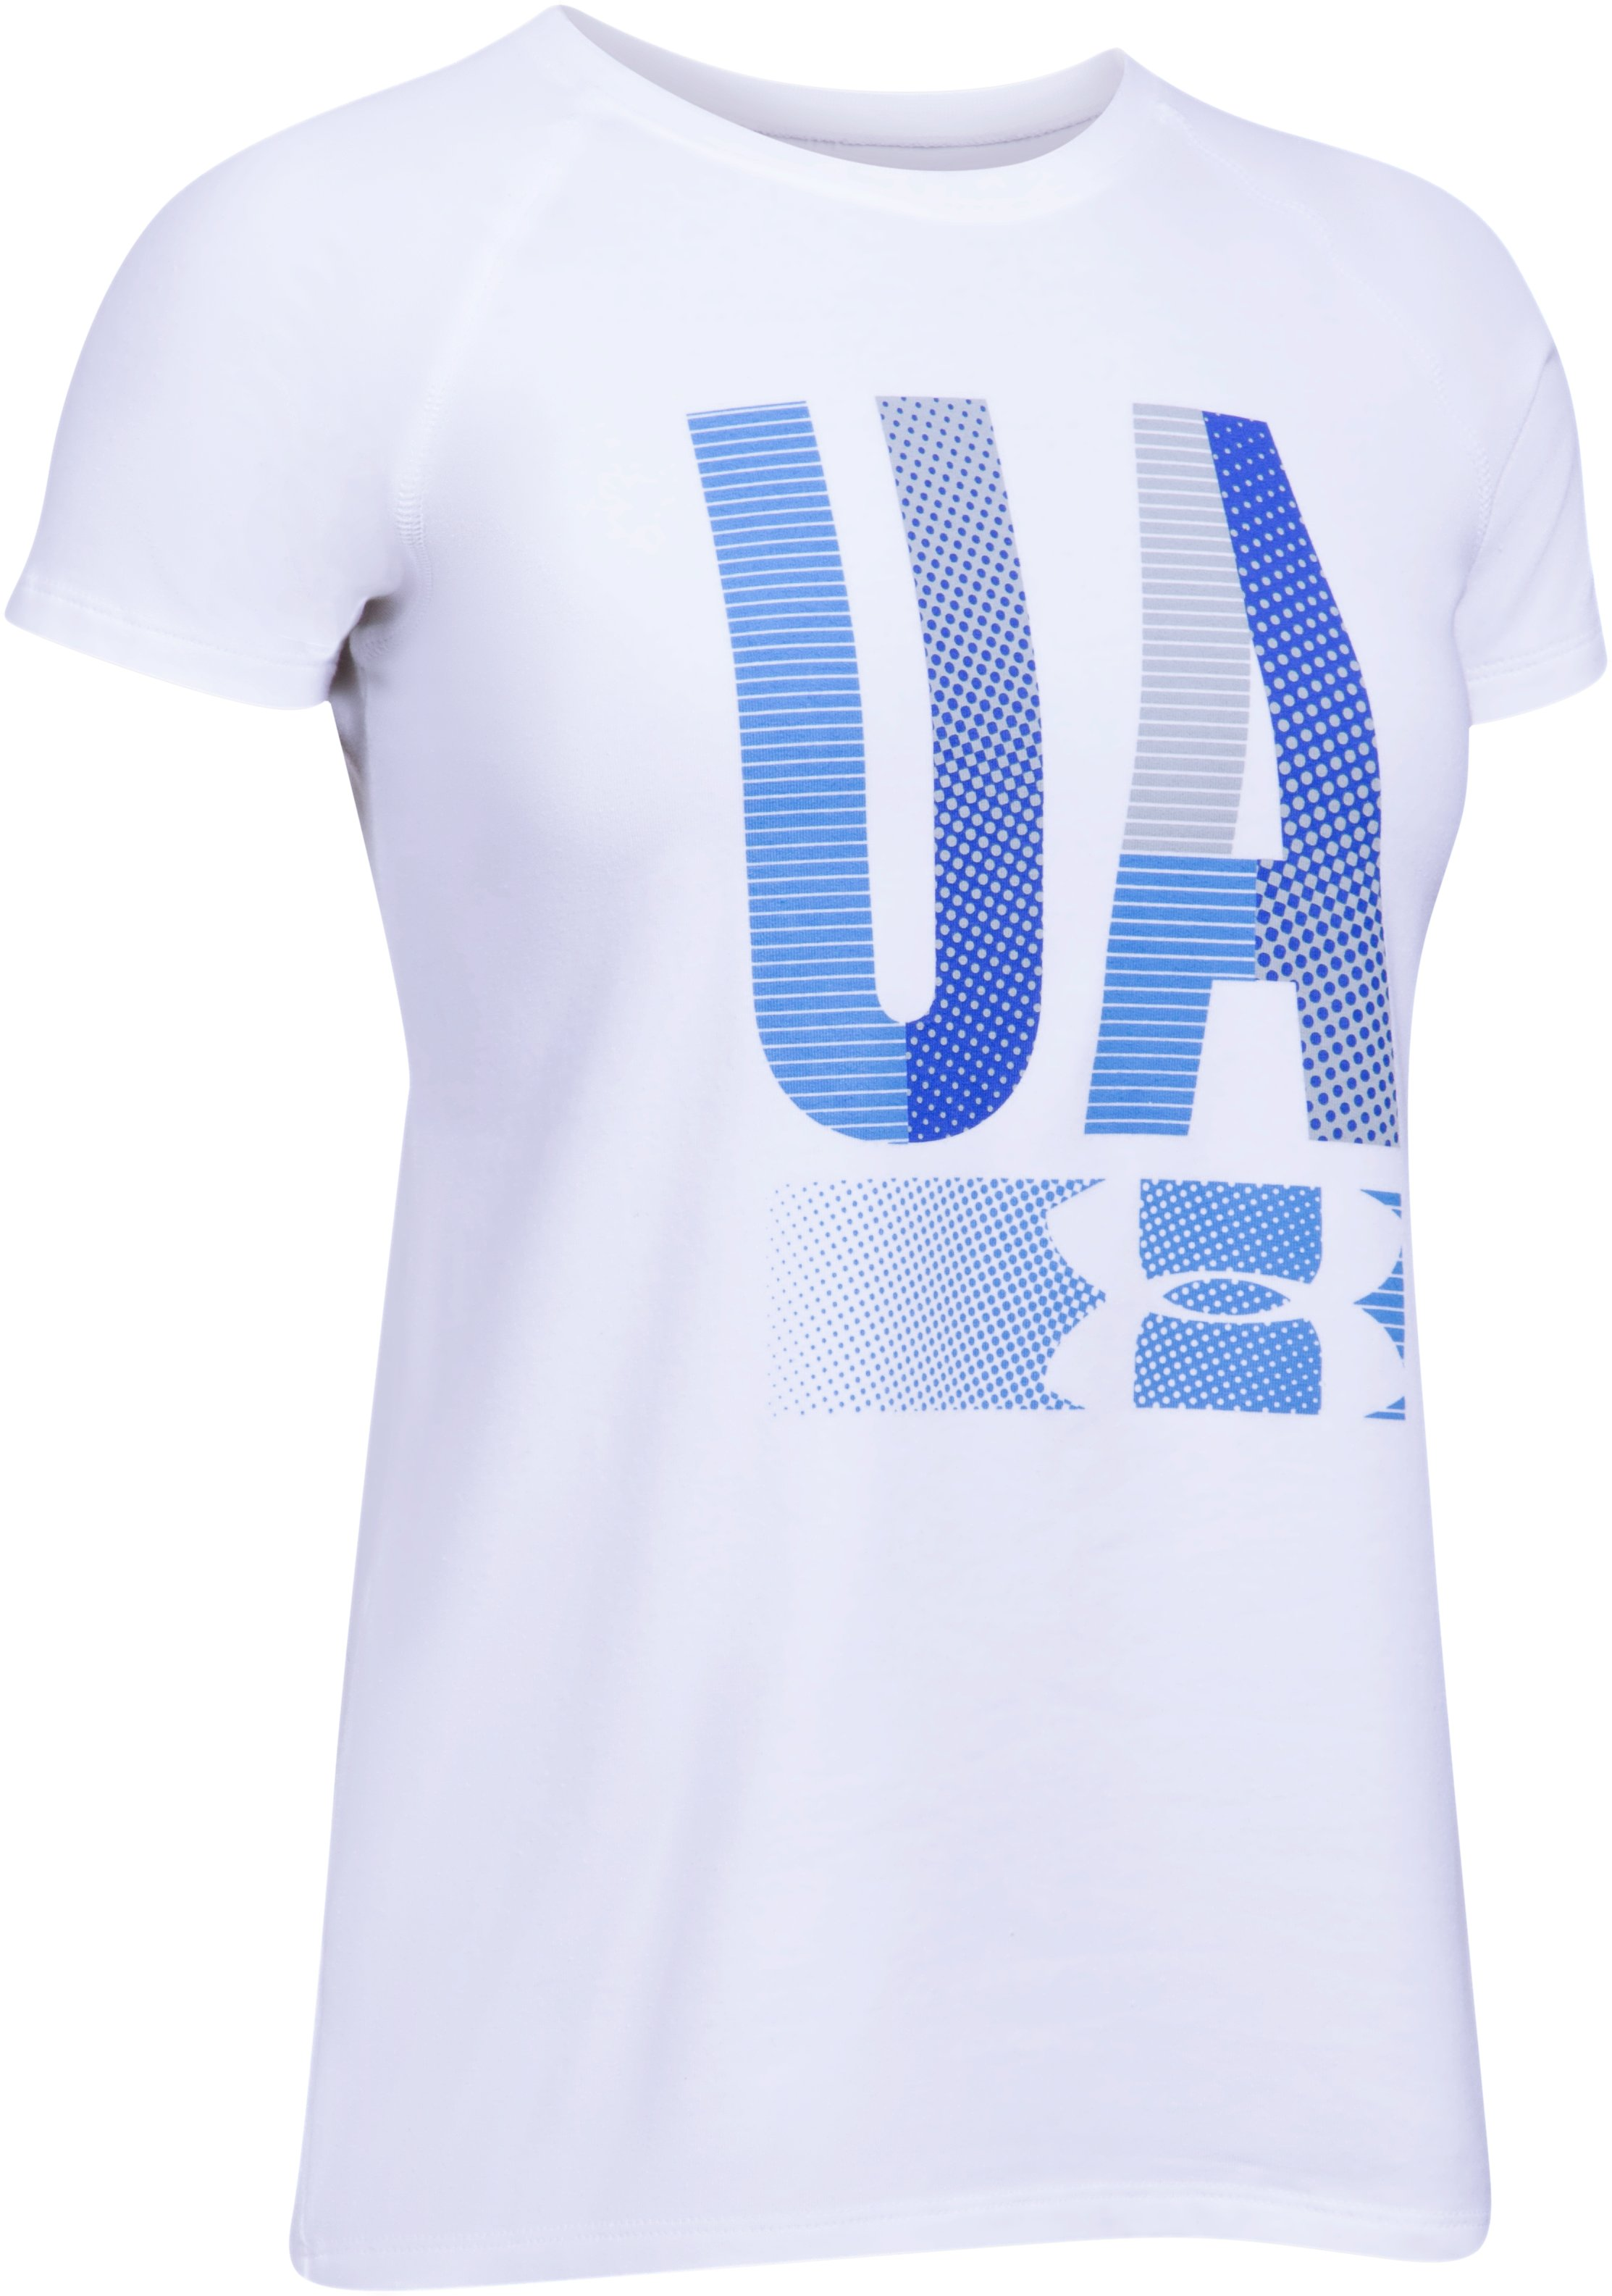 Girls' UA Multiplex Logo Short Sleeve T-Shirt, White,